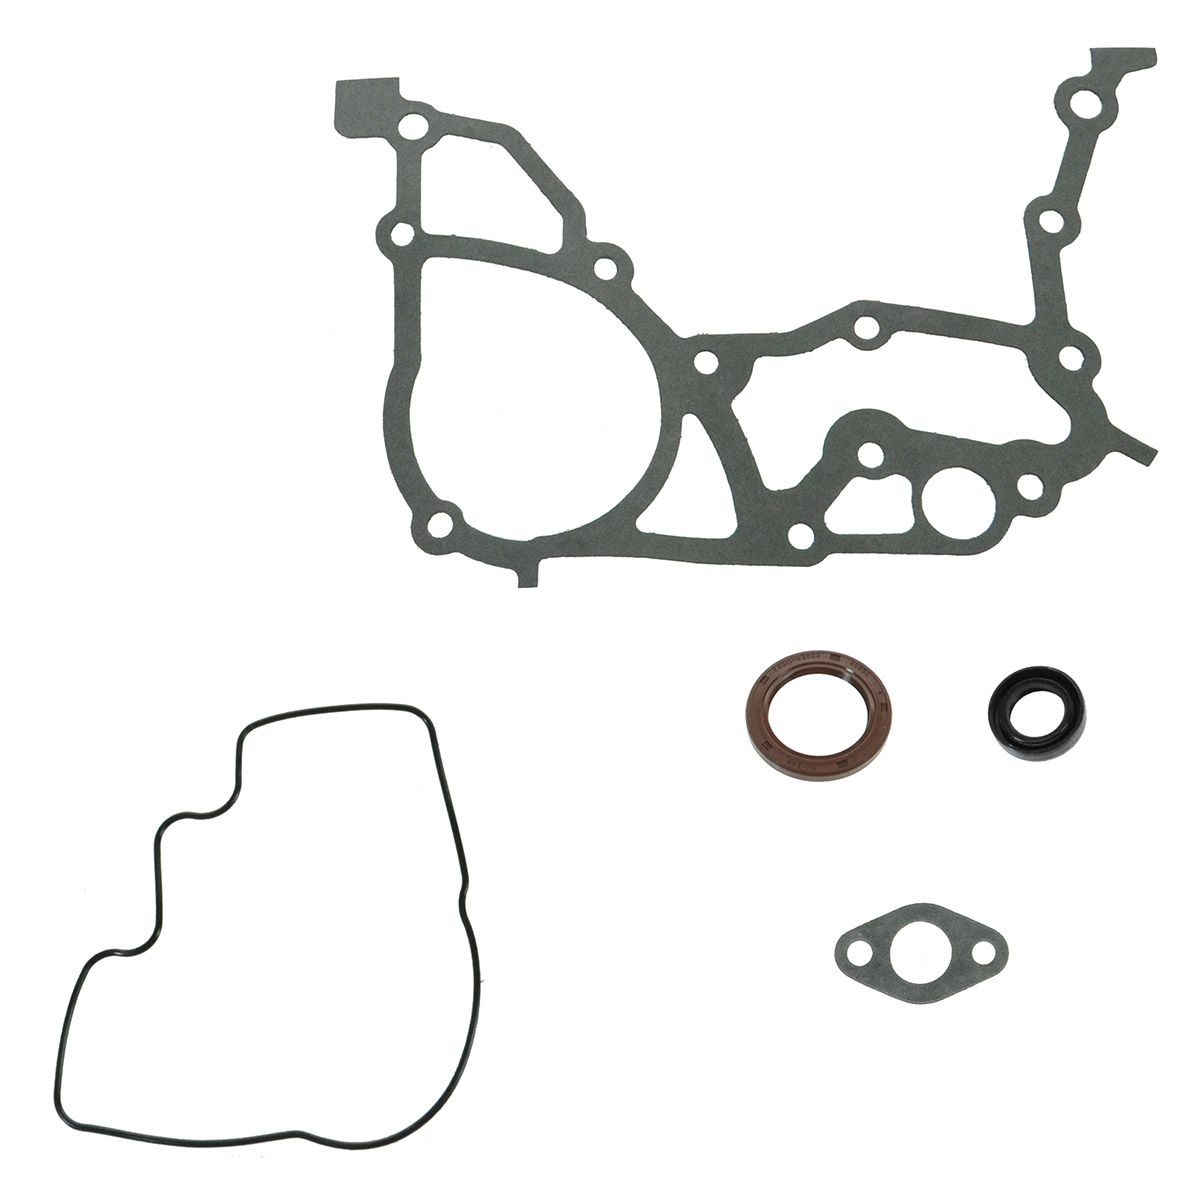 FELPRO Crankshaft Seal Kit Set for Toyota Camry Celica MR